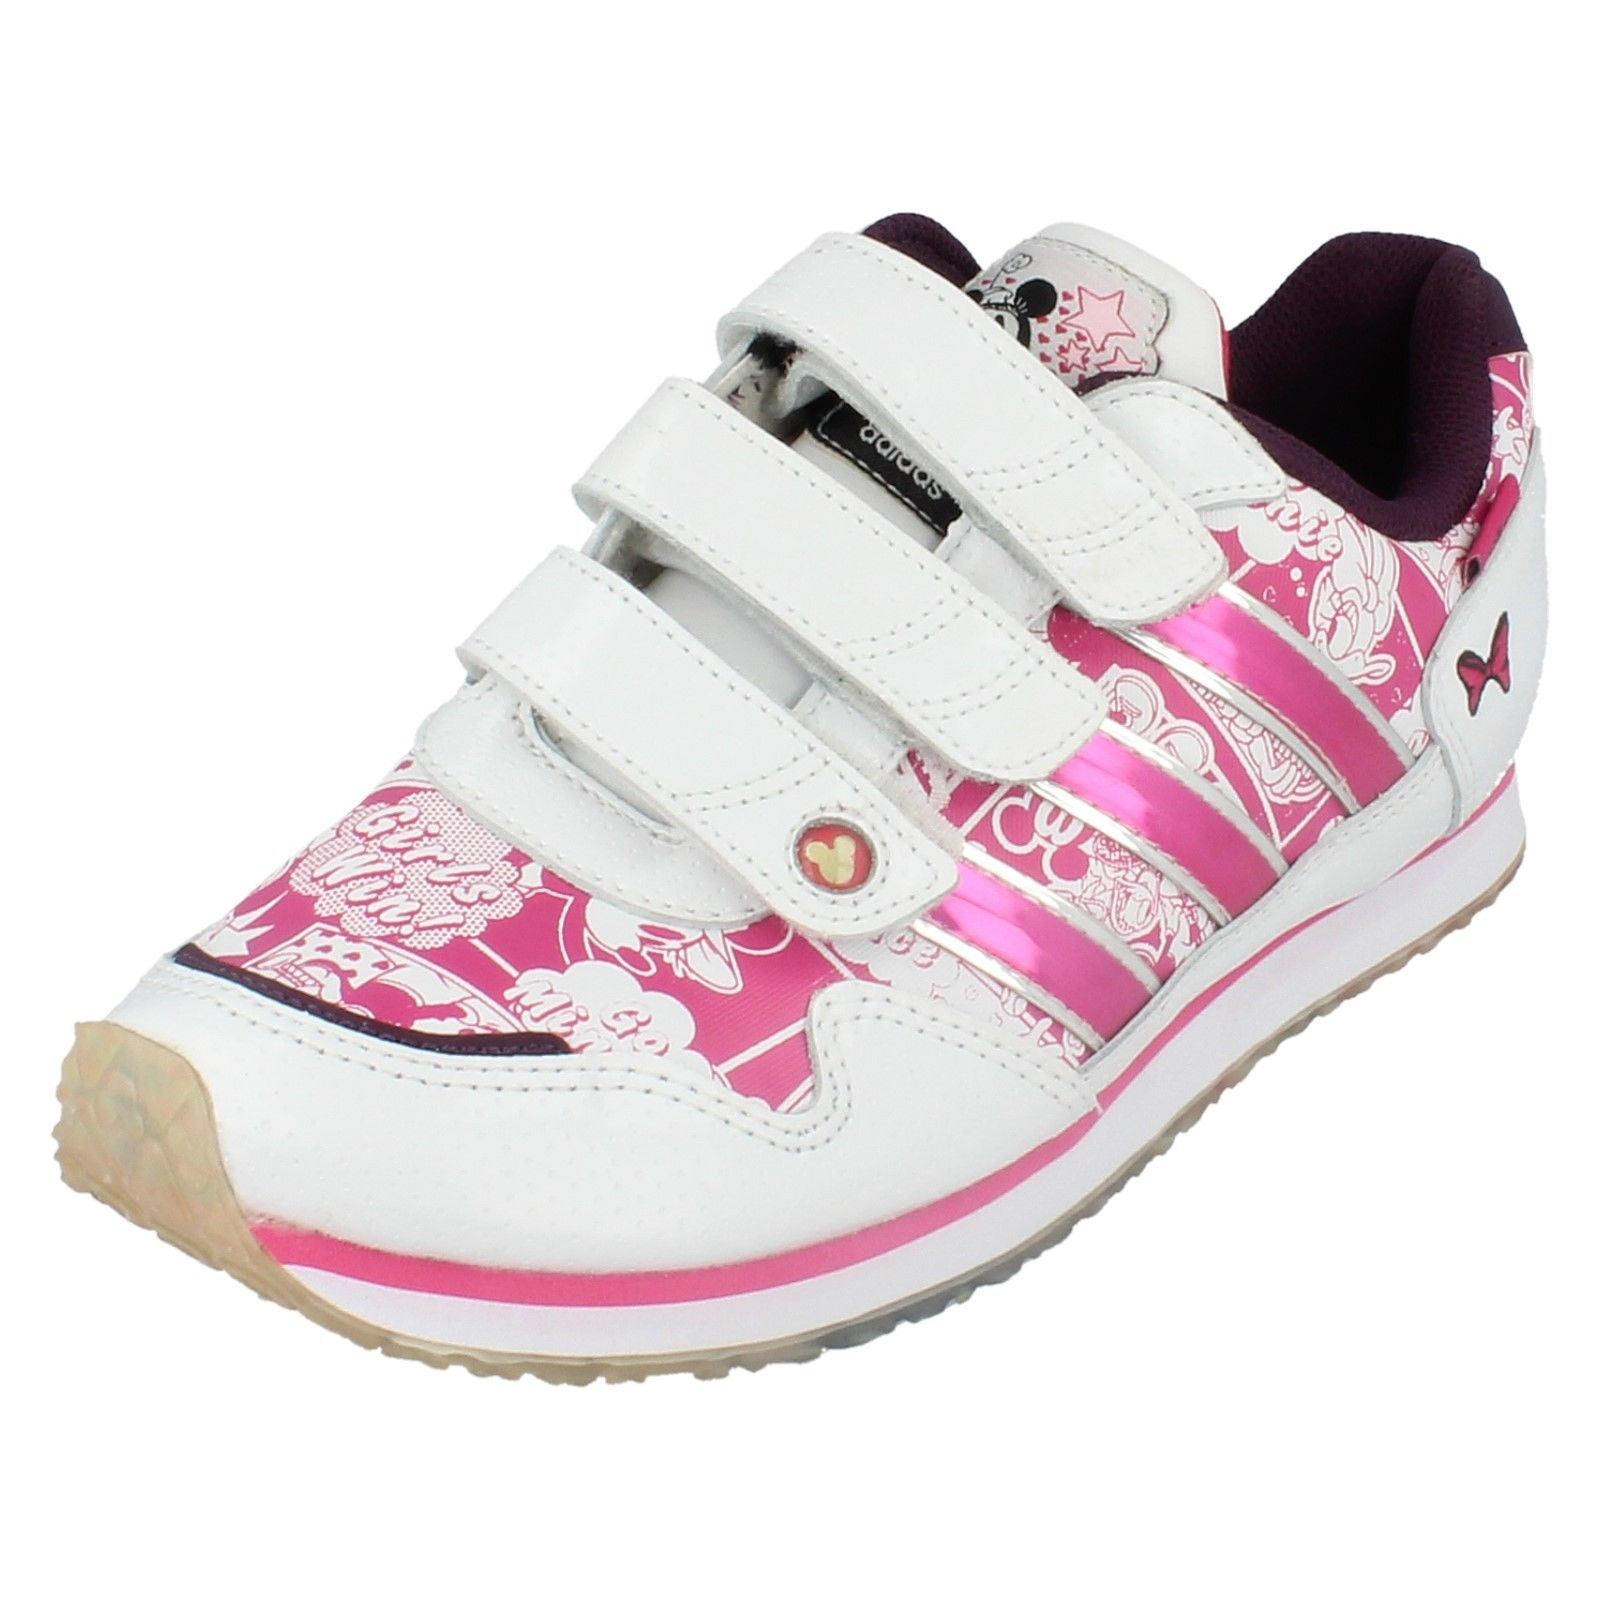 Girls Adidas Trainer Disney StreetRun ~ N